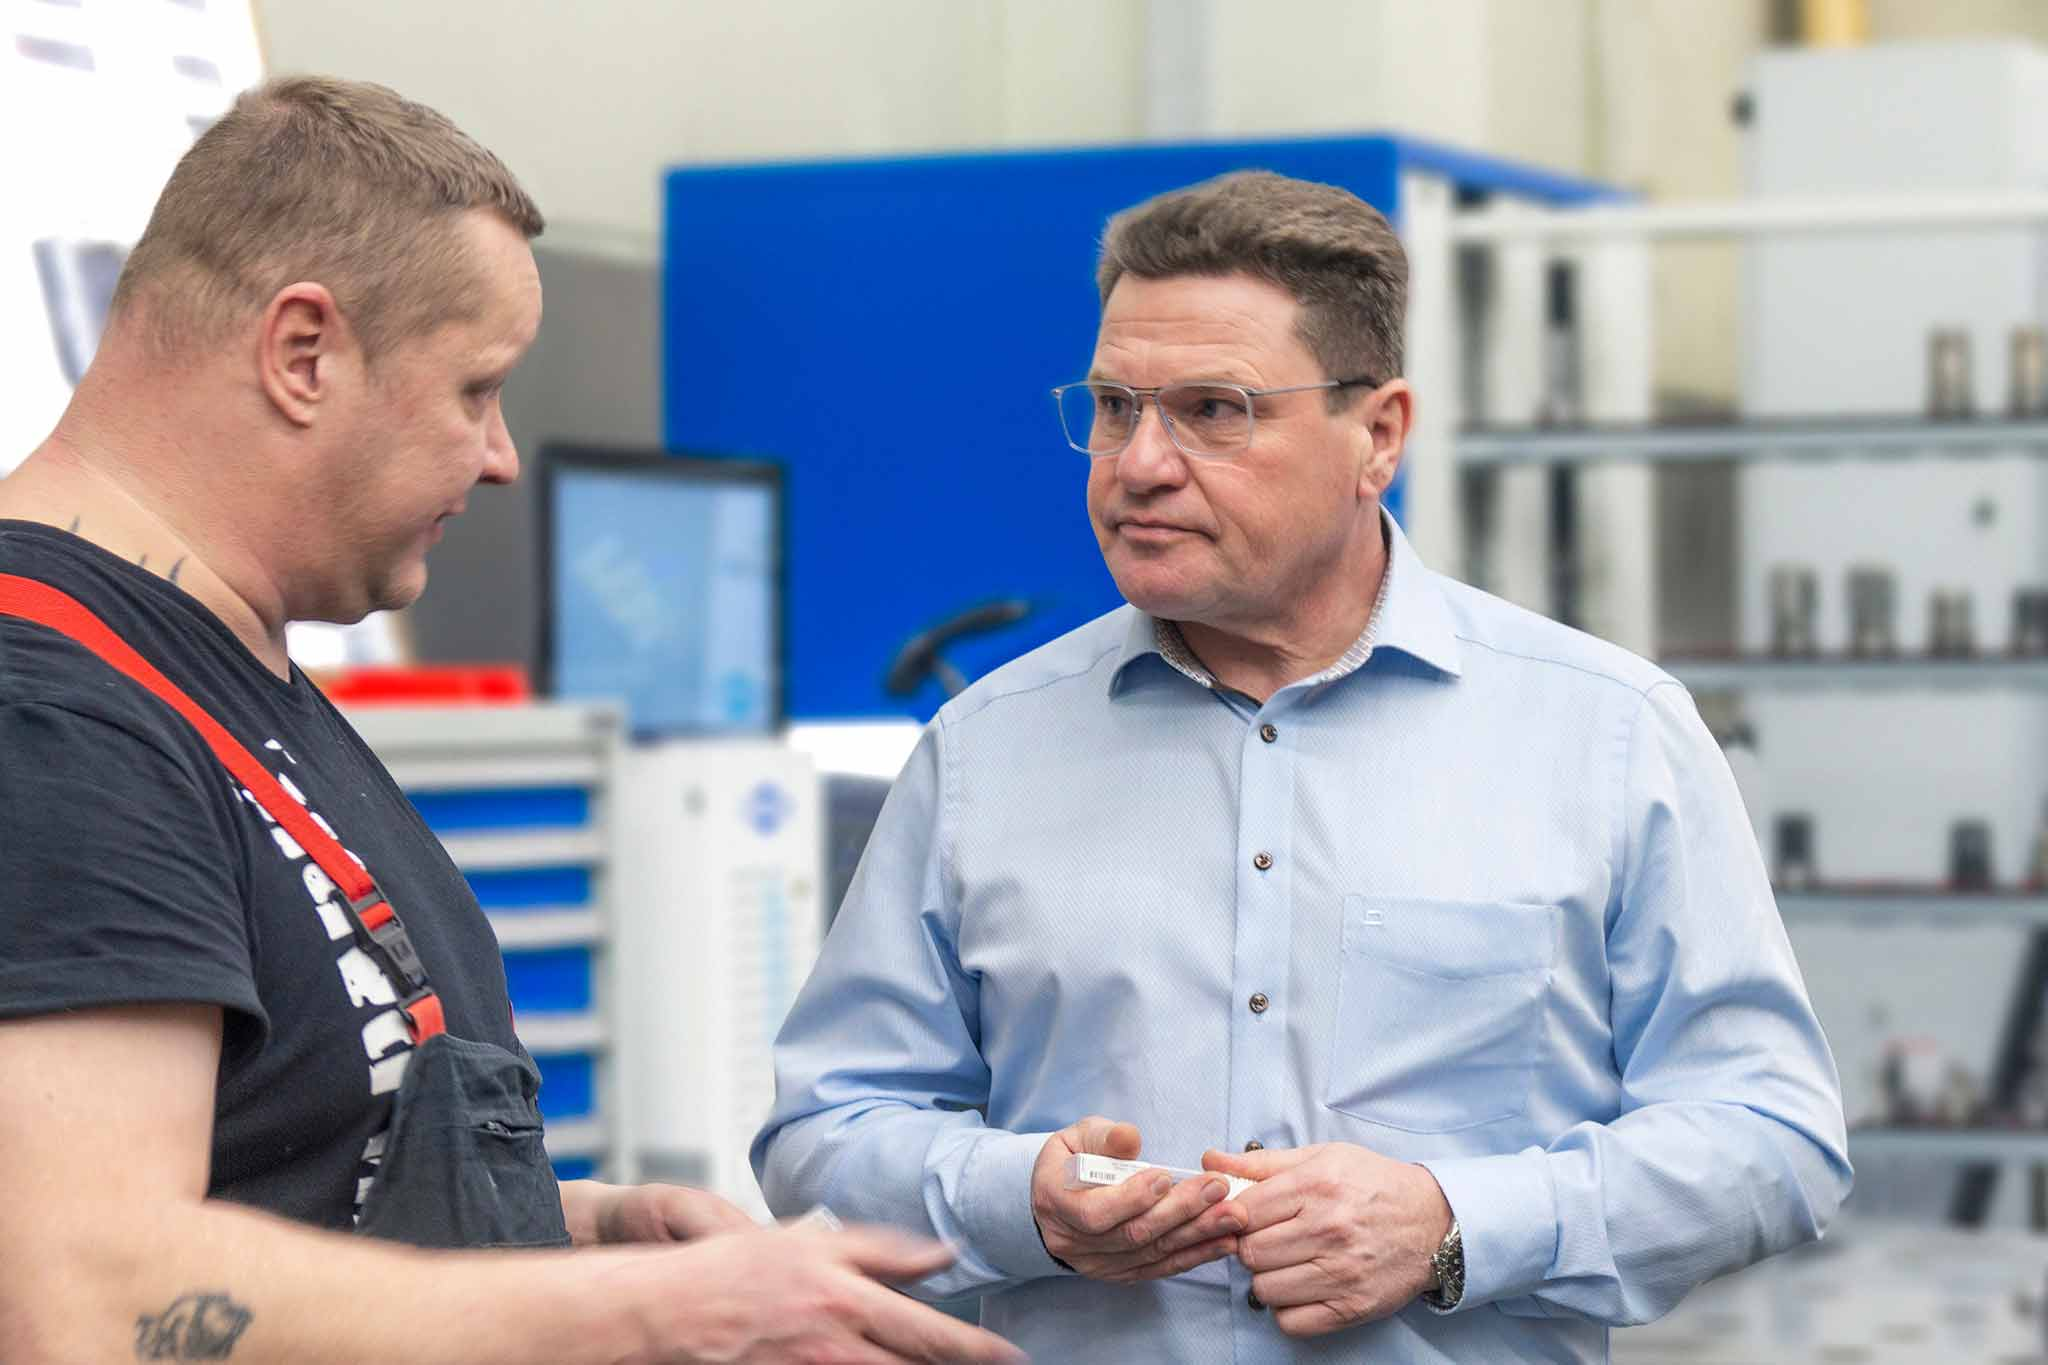 David Frommhold from Walter Formenbau speaking to MAPAL consultant Alfred Baur in the manufacturing area. The UNIBASE-M is shown in the background.